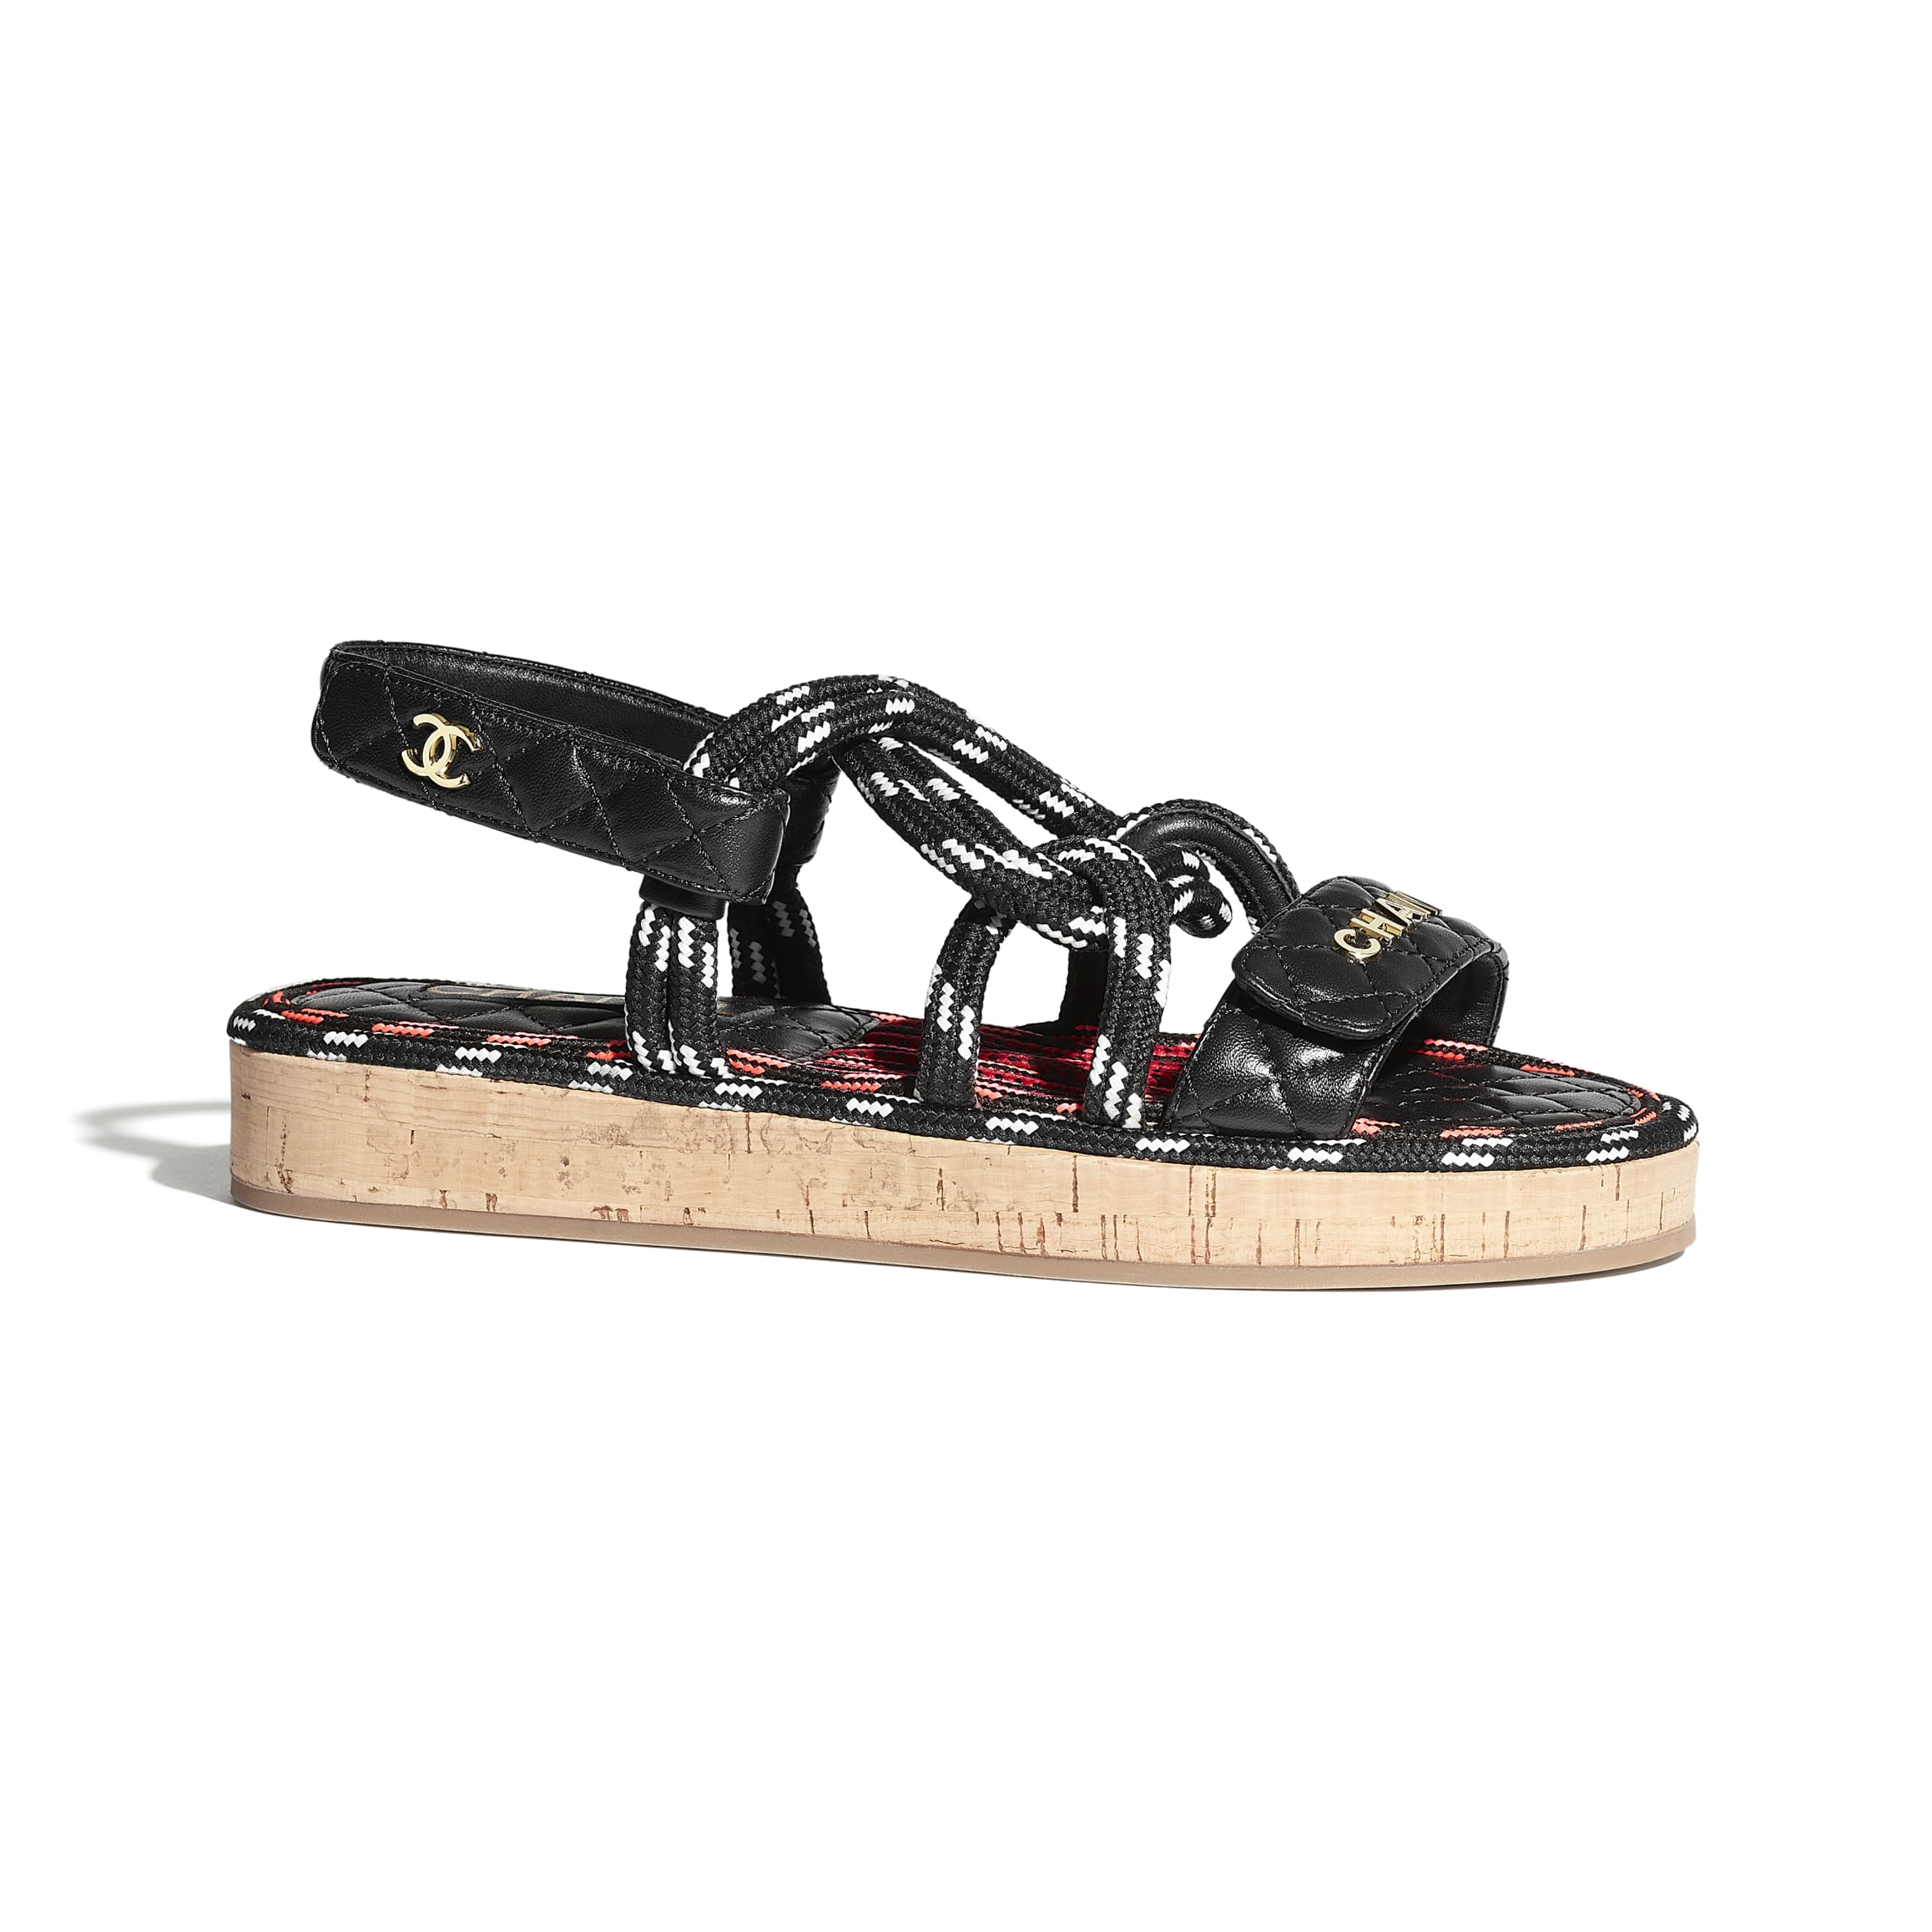 Sandals - Black & White - Cord & Lambskin - Default view - see standard sized version